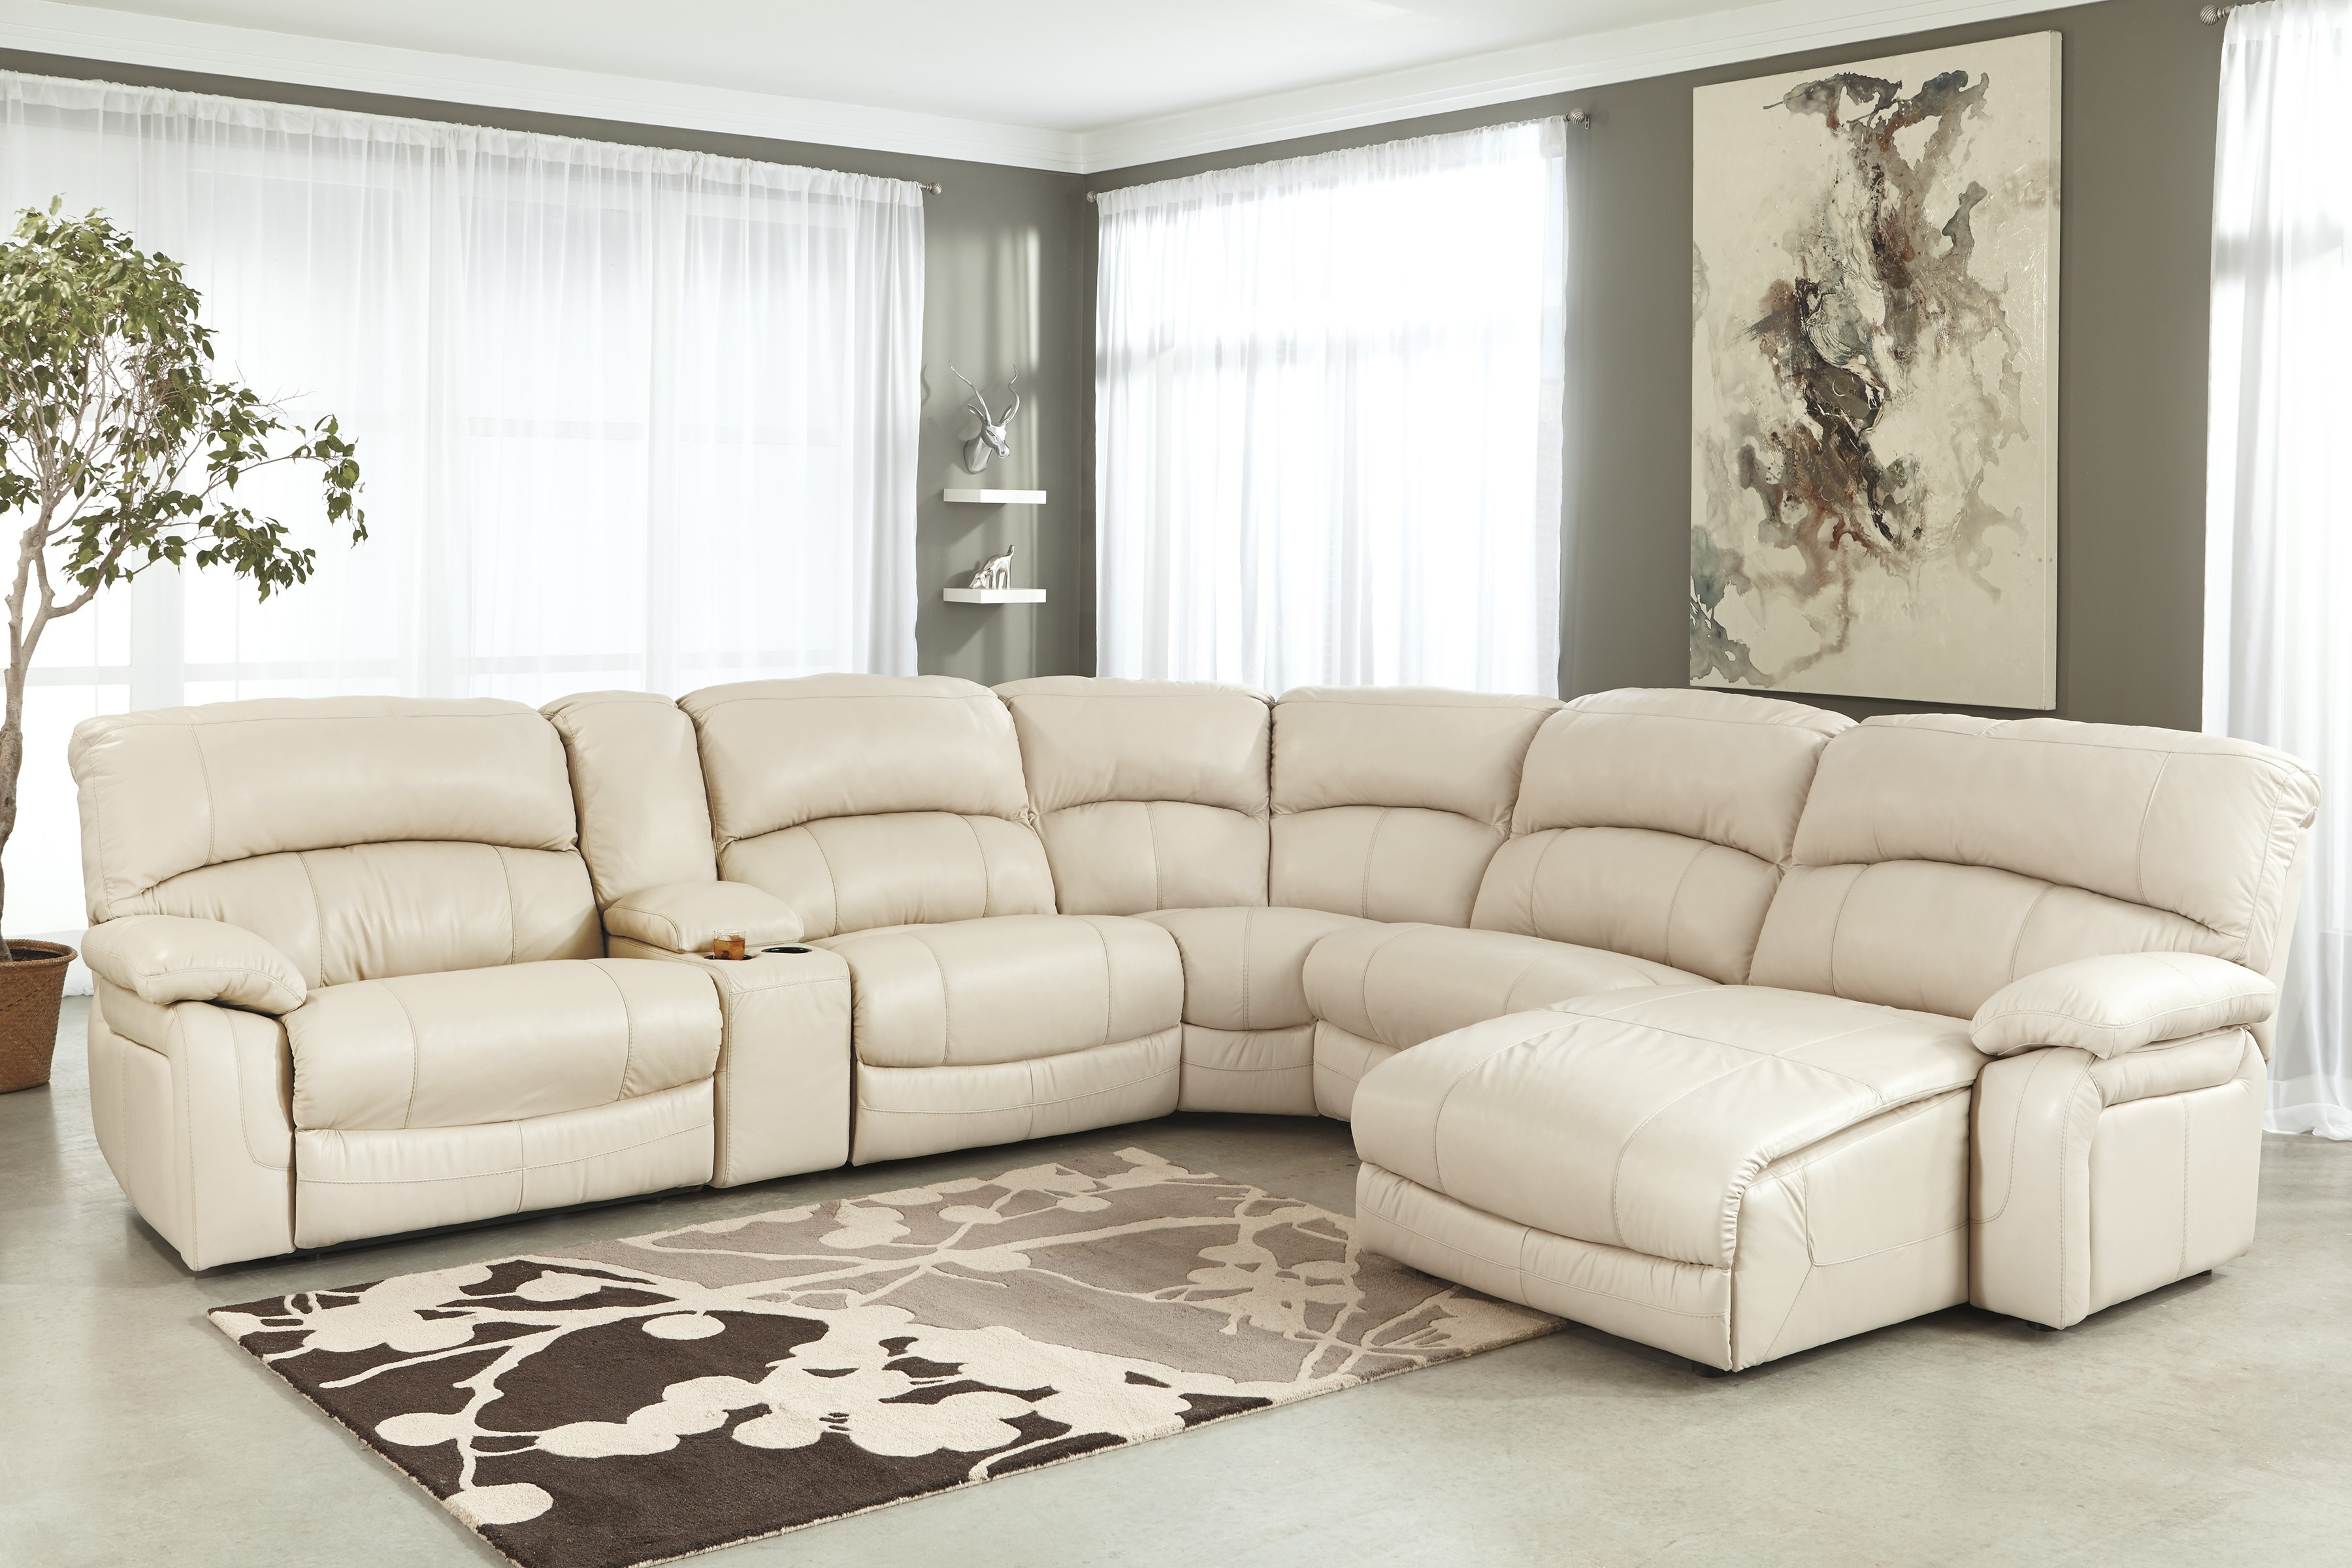 Uncategorized : Off White Leather Sectional Within Lovely Sofas For Off White Leather Sofas (Image 10 of 10)